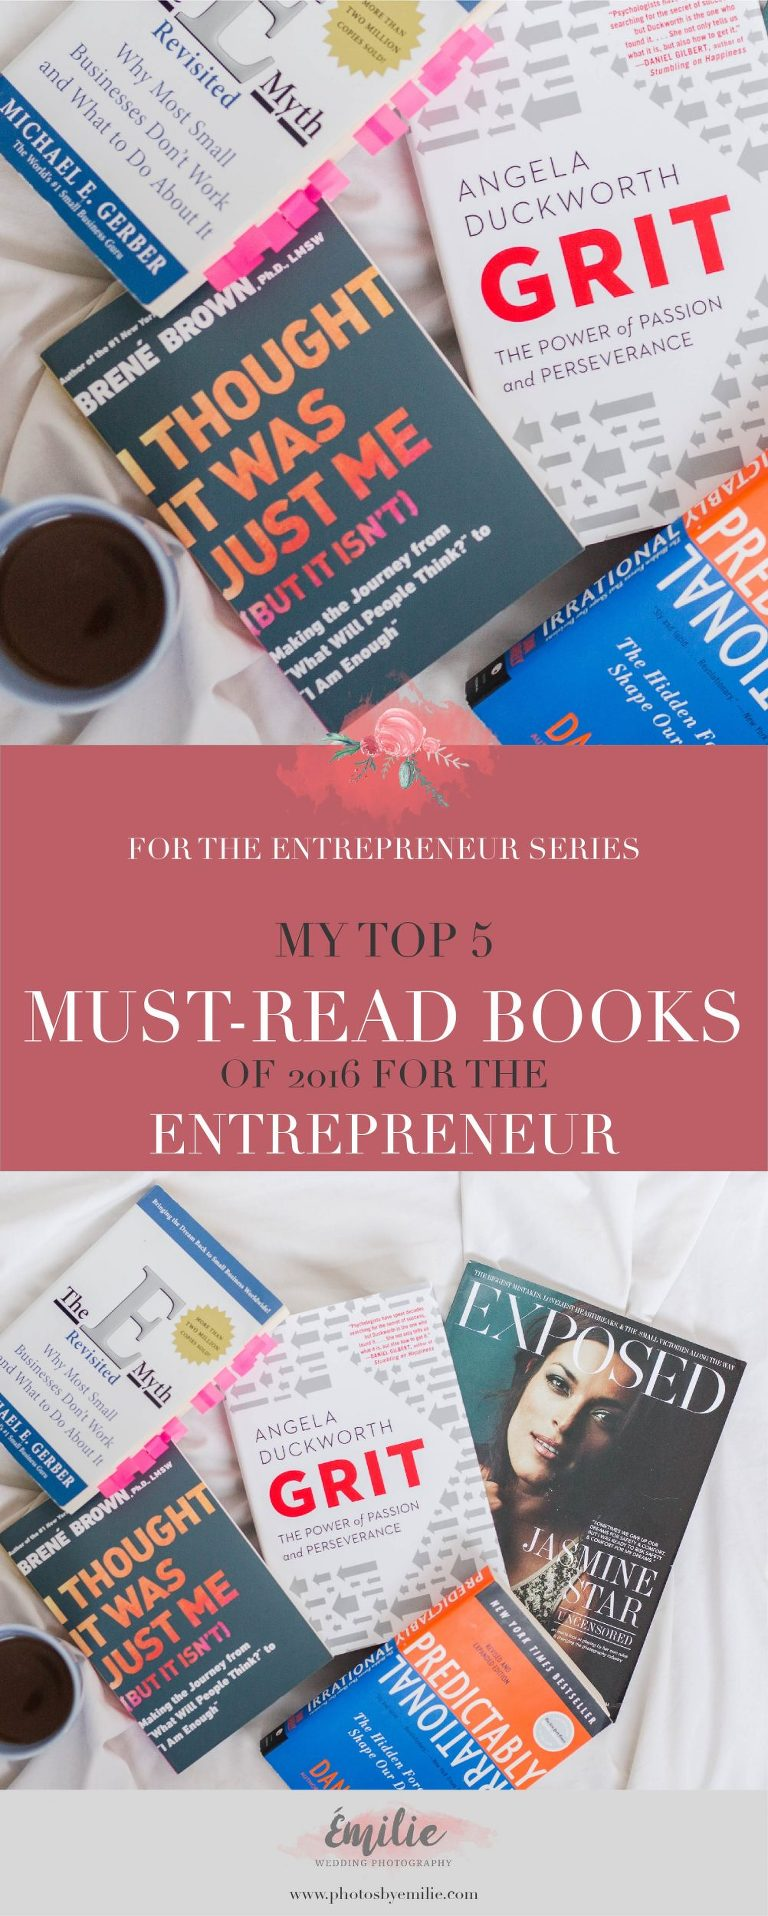 My Top 5 Must Read Books of 2016 for the Entrepreneur